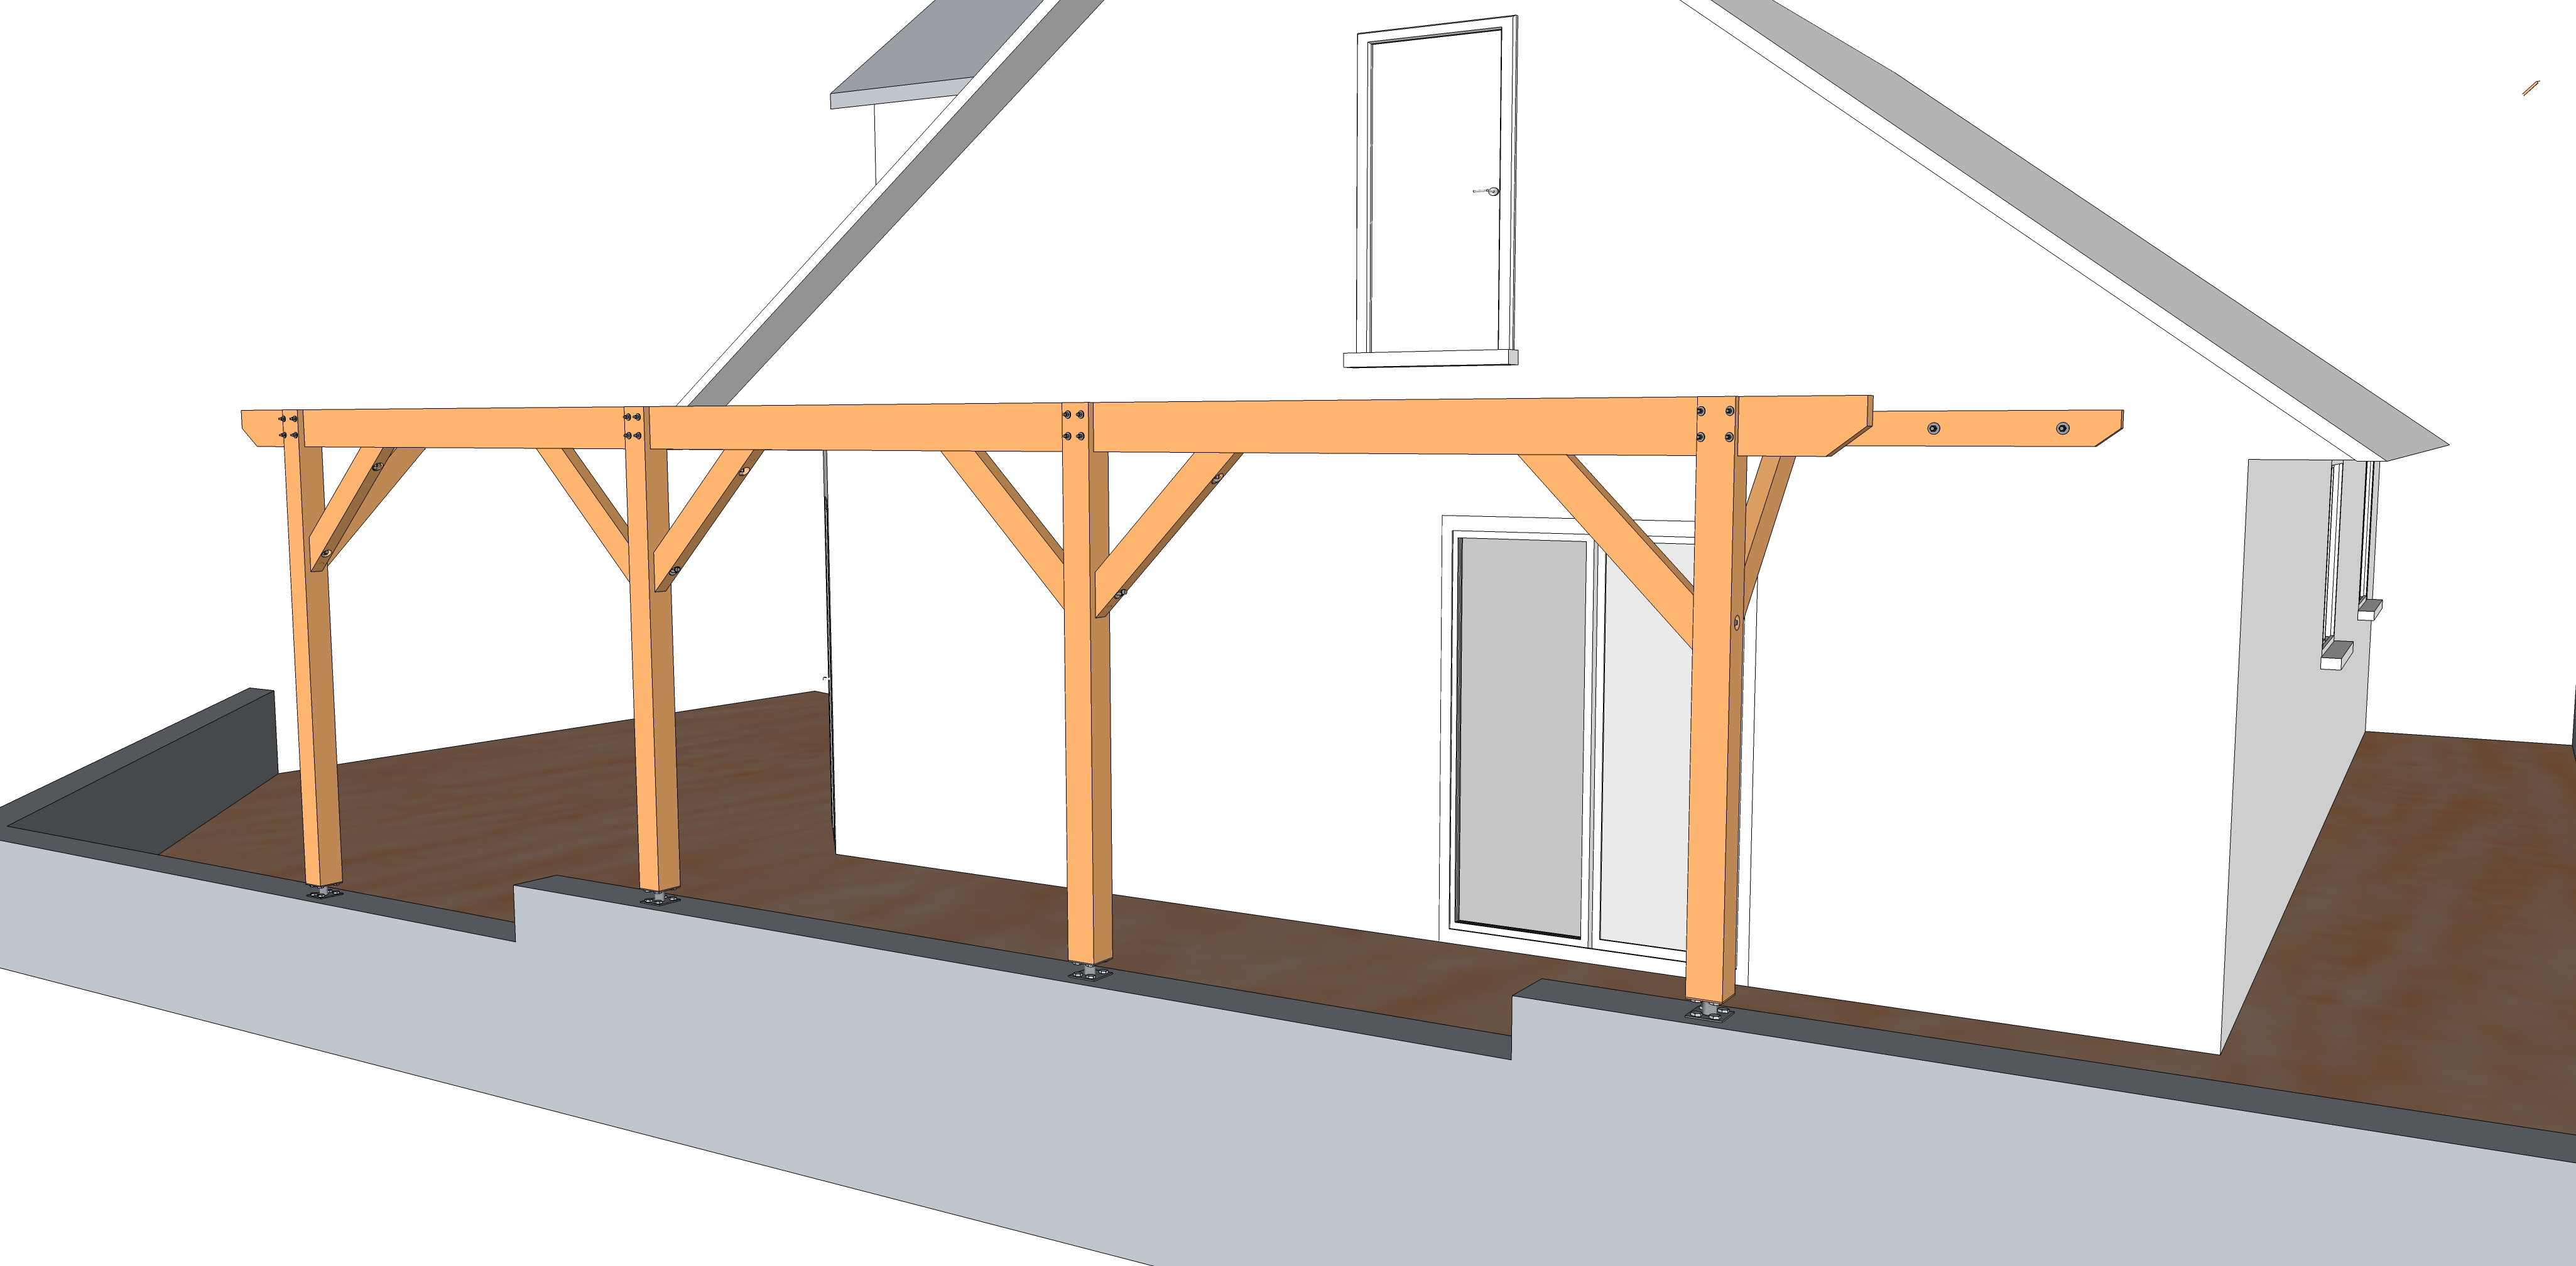 Small Pergola For Patio Backyard Best Unique Patio Cover Designs Ideas Patio Cover Designs Photos Patio Cover Designs San Diego also Concrete Patio additionally Taille De Charpente additionally Outdoor Bar Tropical Patio San Francisco additionally Shed Plans 10x12 Gable Shed. on simple pergola plans